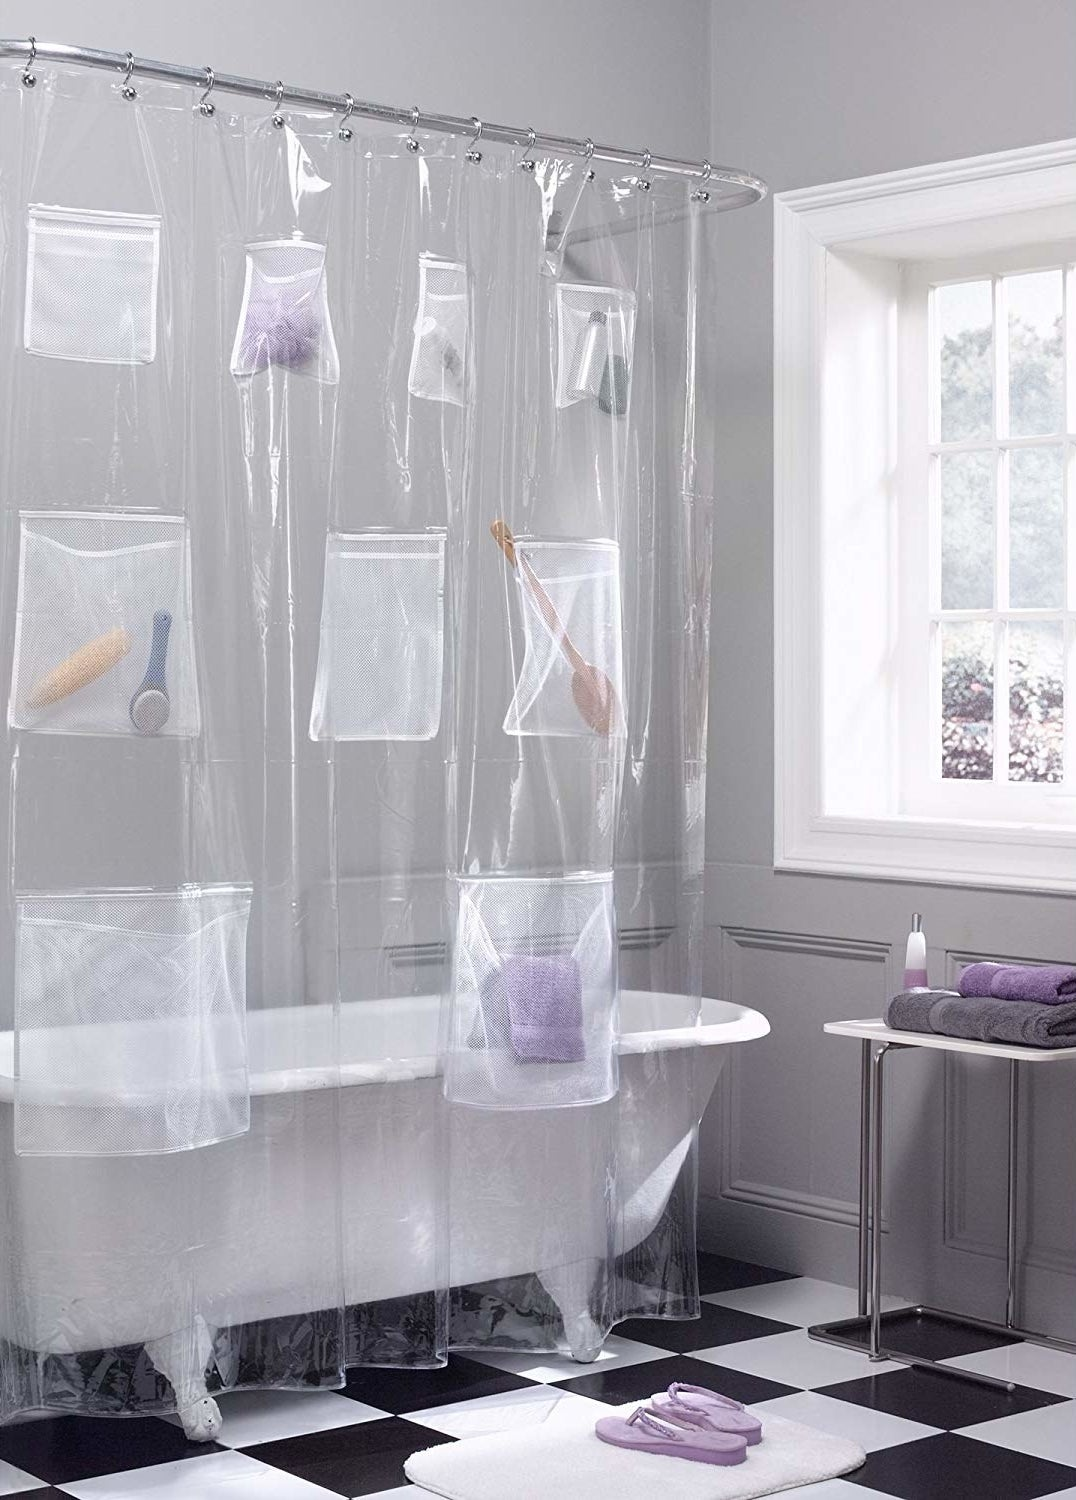 clear shower curtain with mesh pockets filled with towel, shampoo, brush, and other items